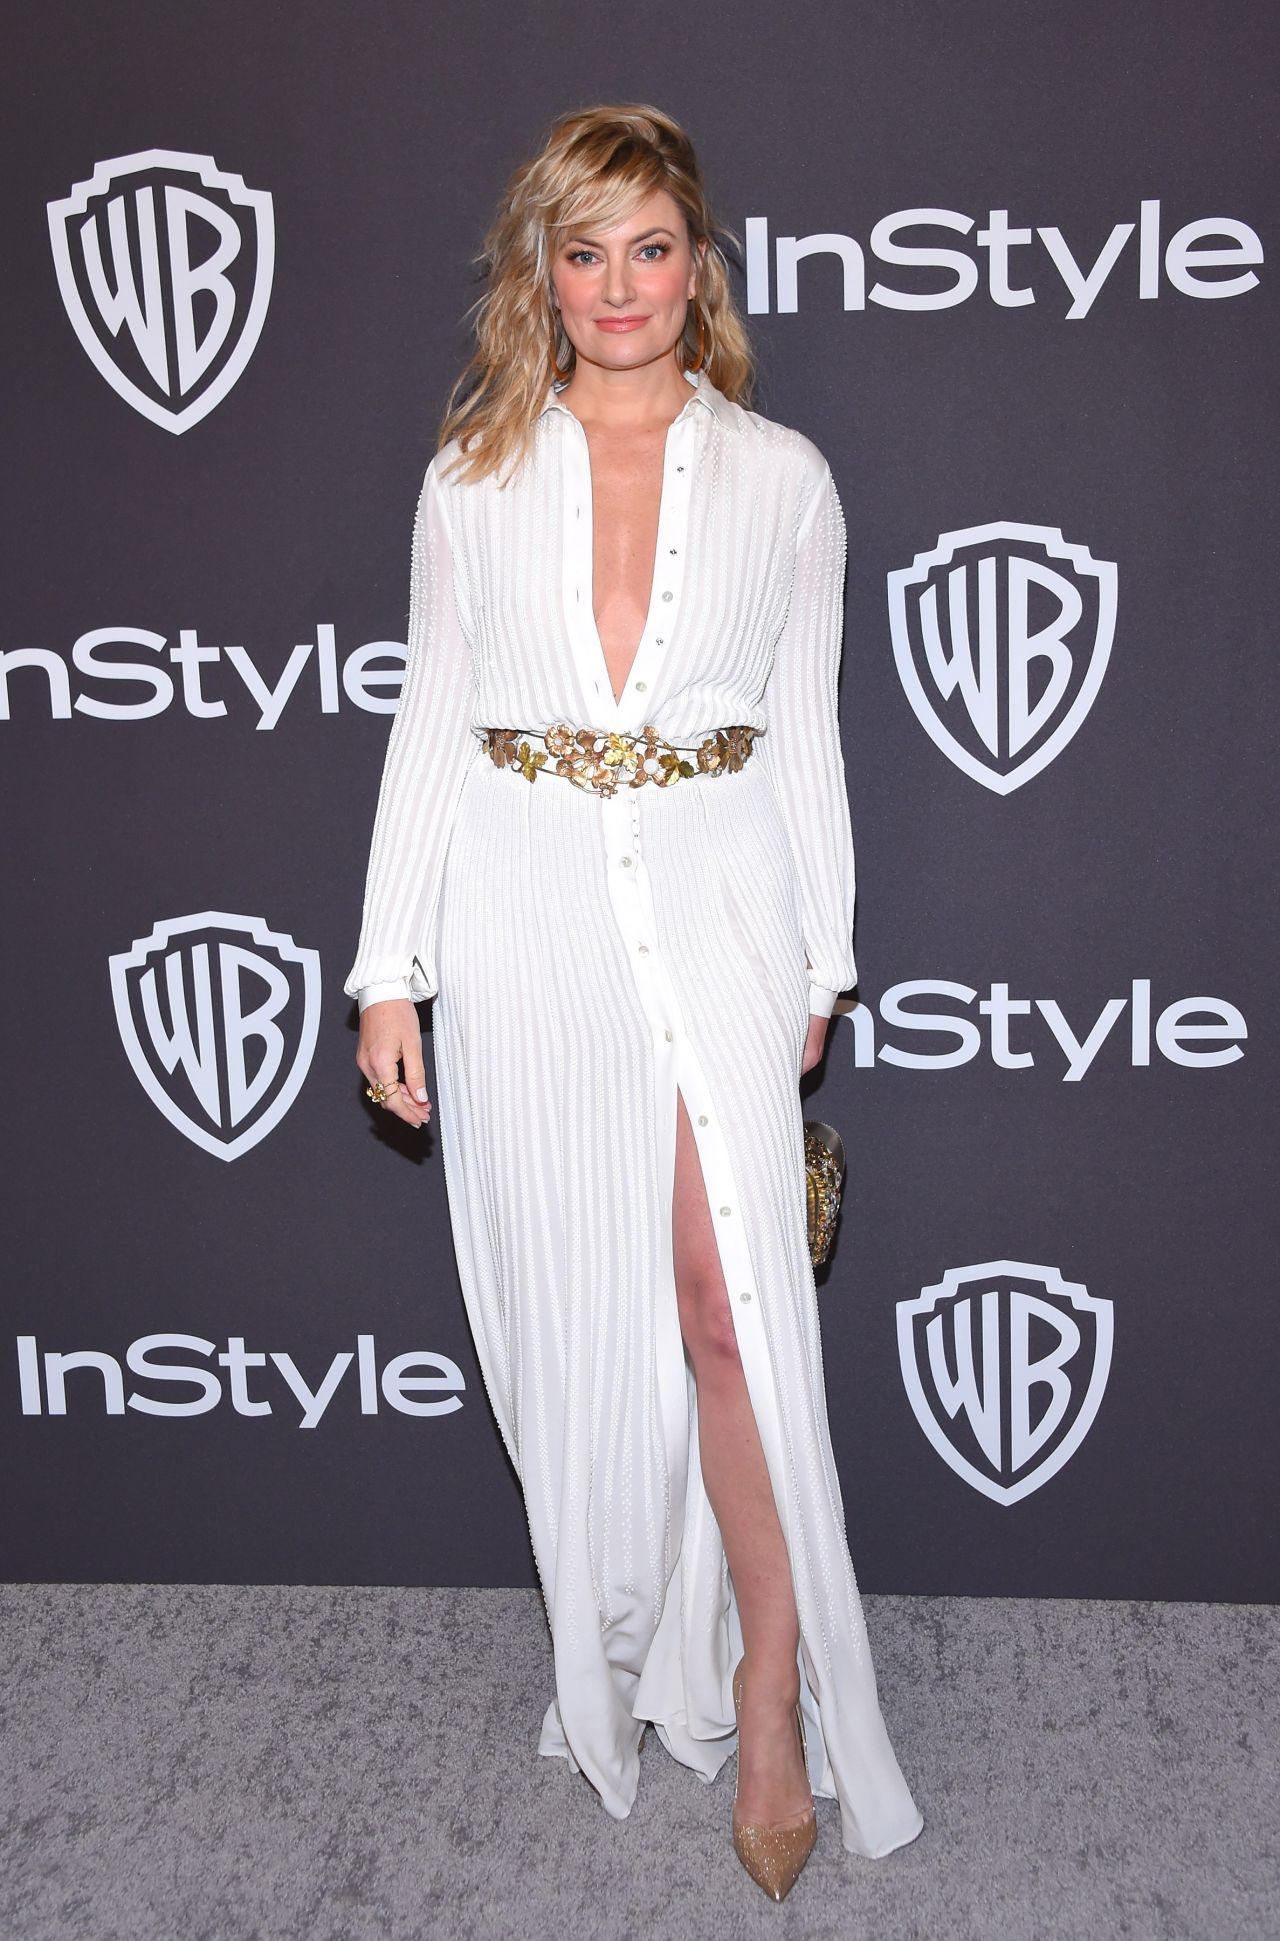 madchen-amick-instyle-and-warner-bros-go